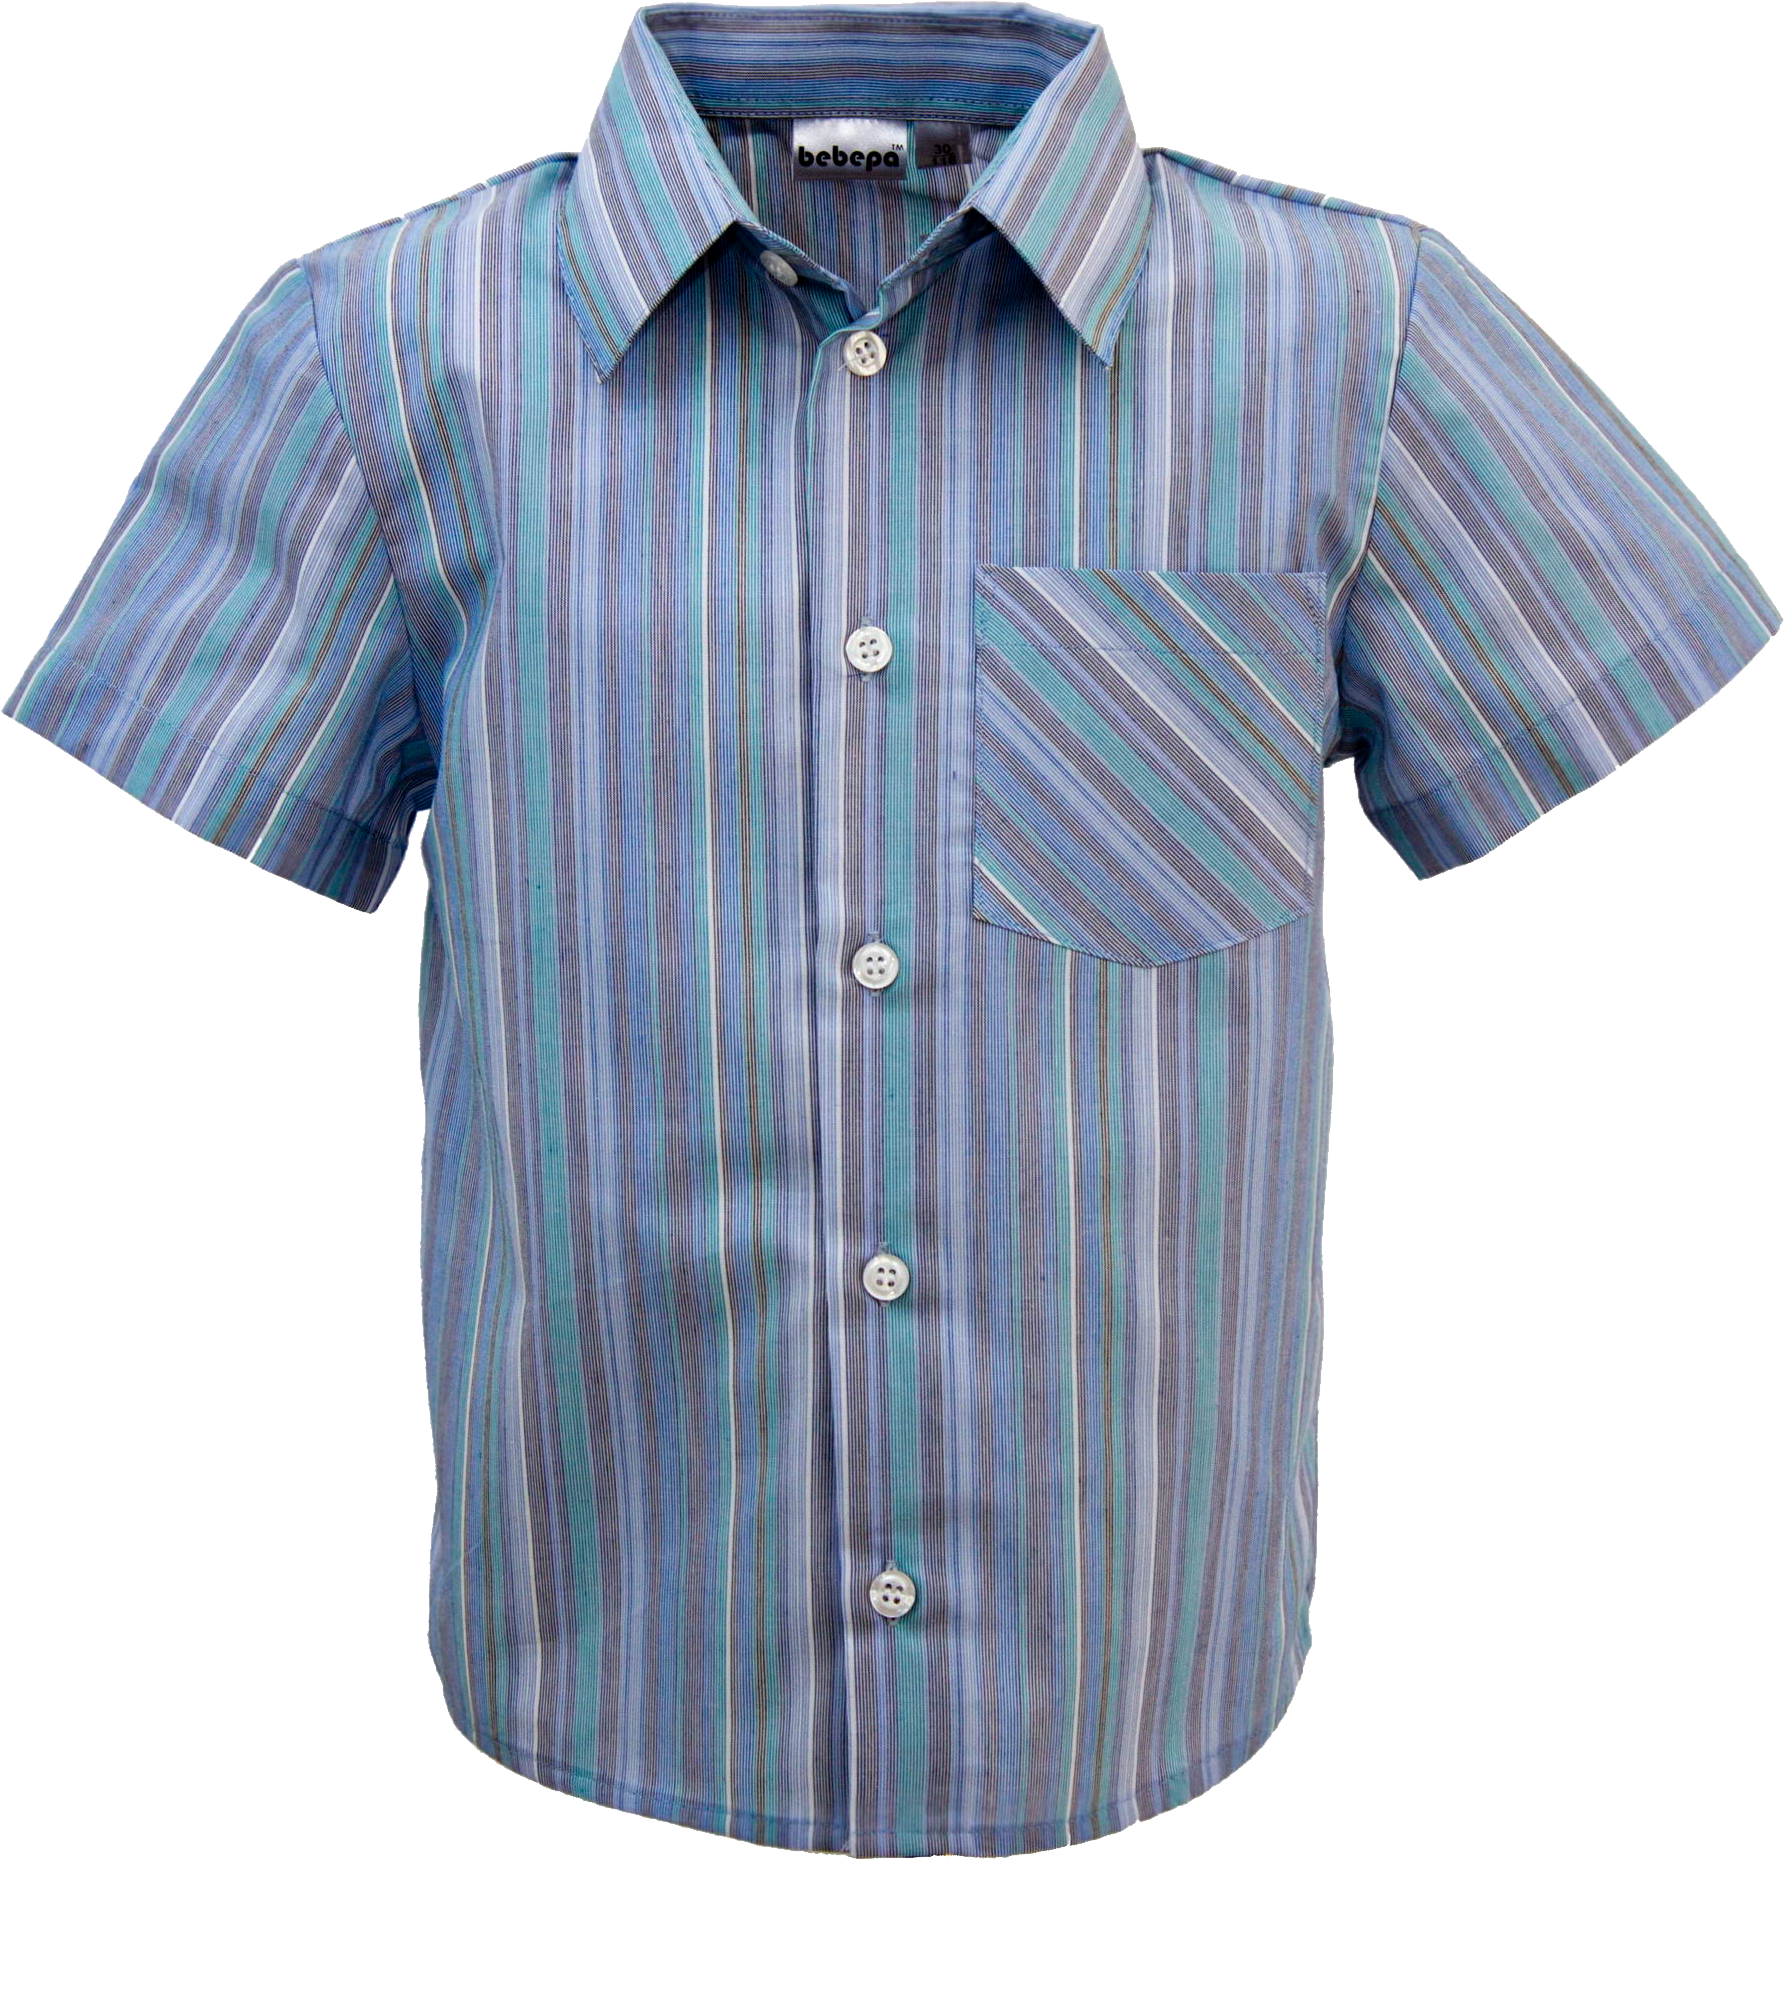 Shirt clipart buttoned shirt. Dress png images free